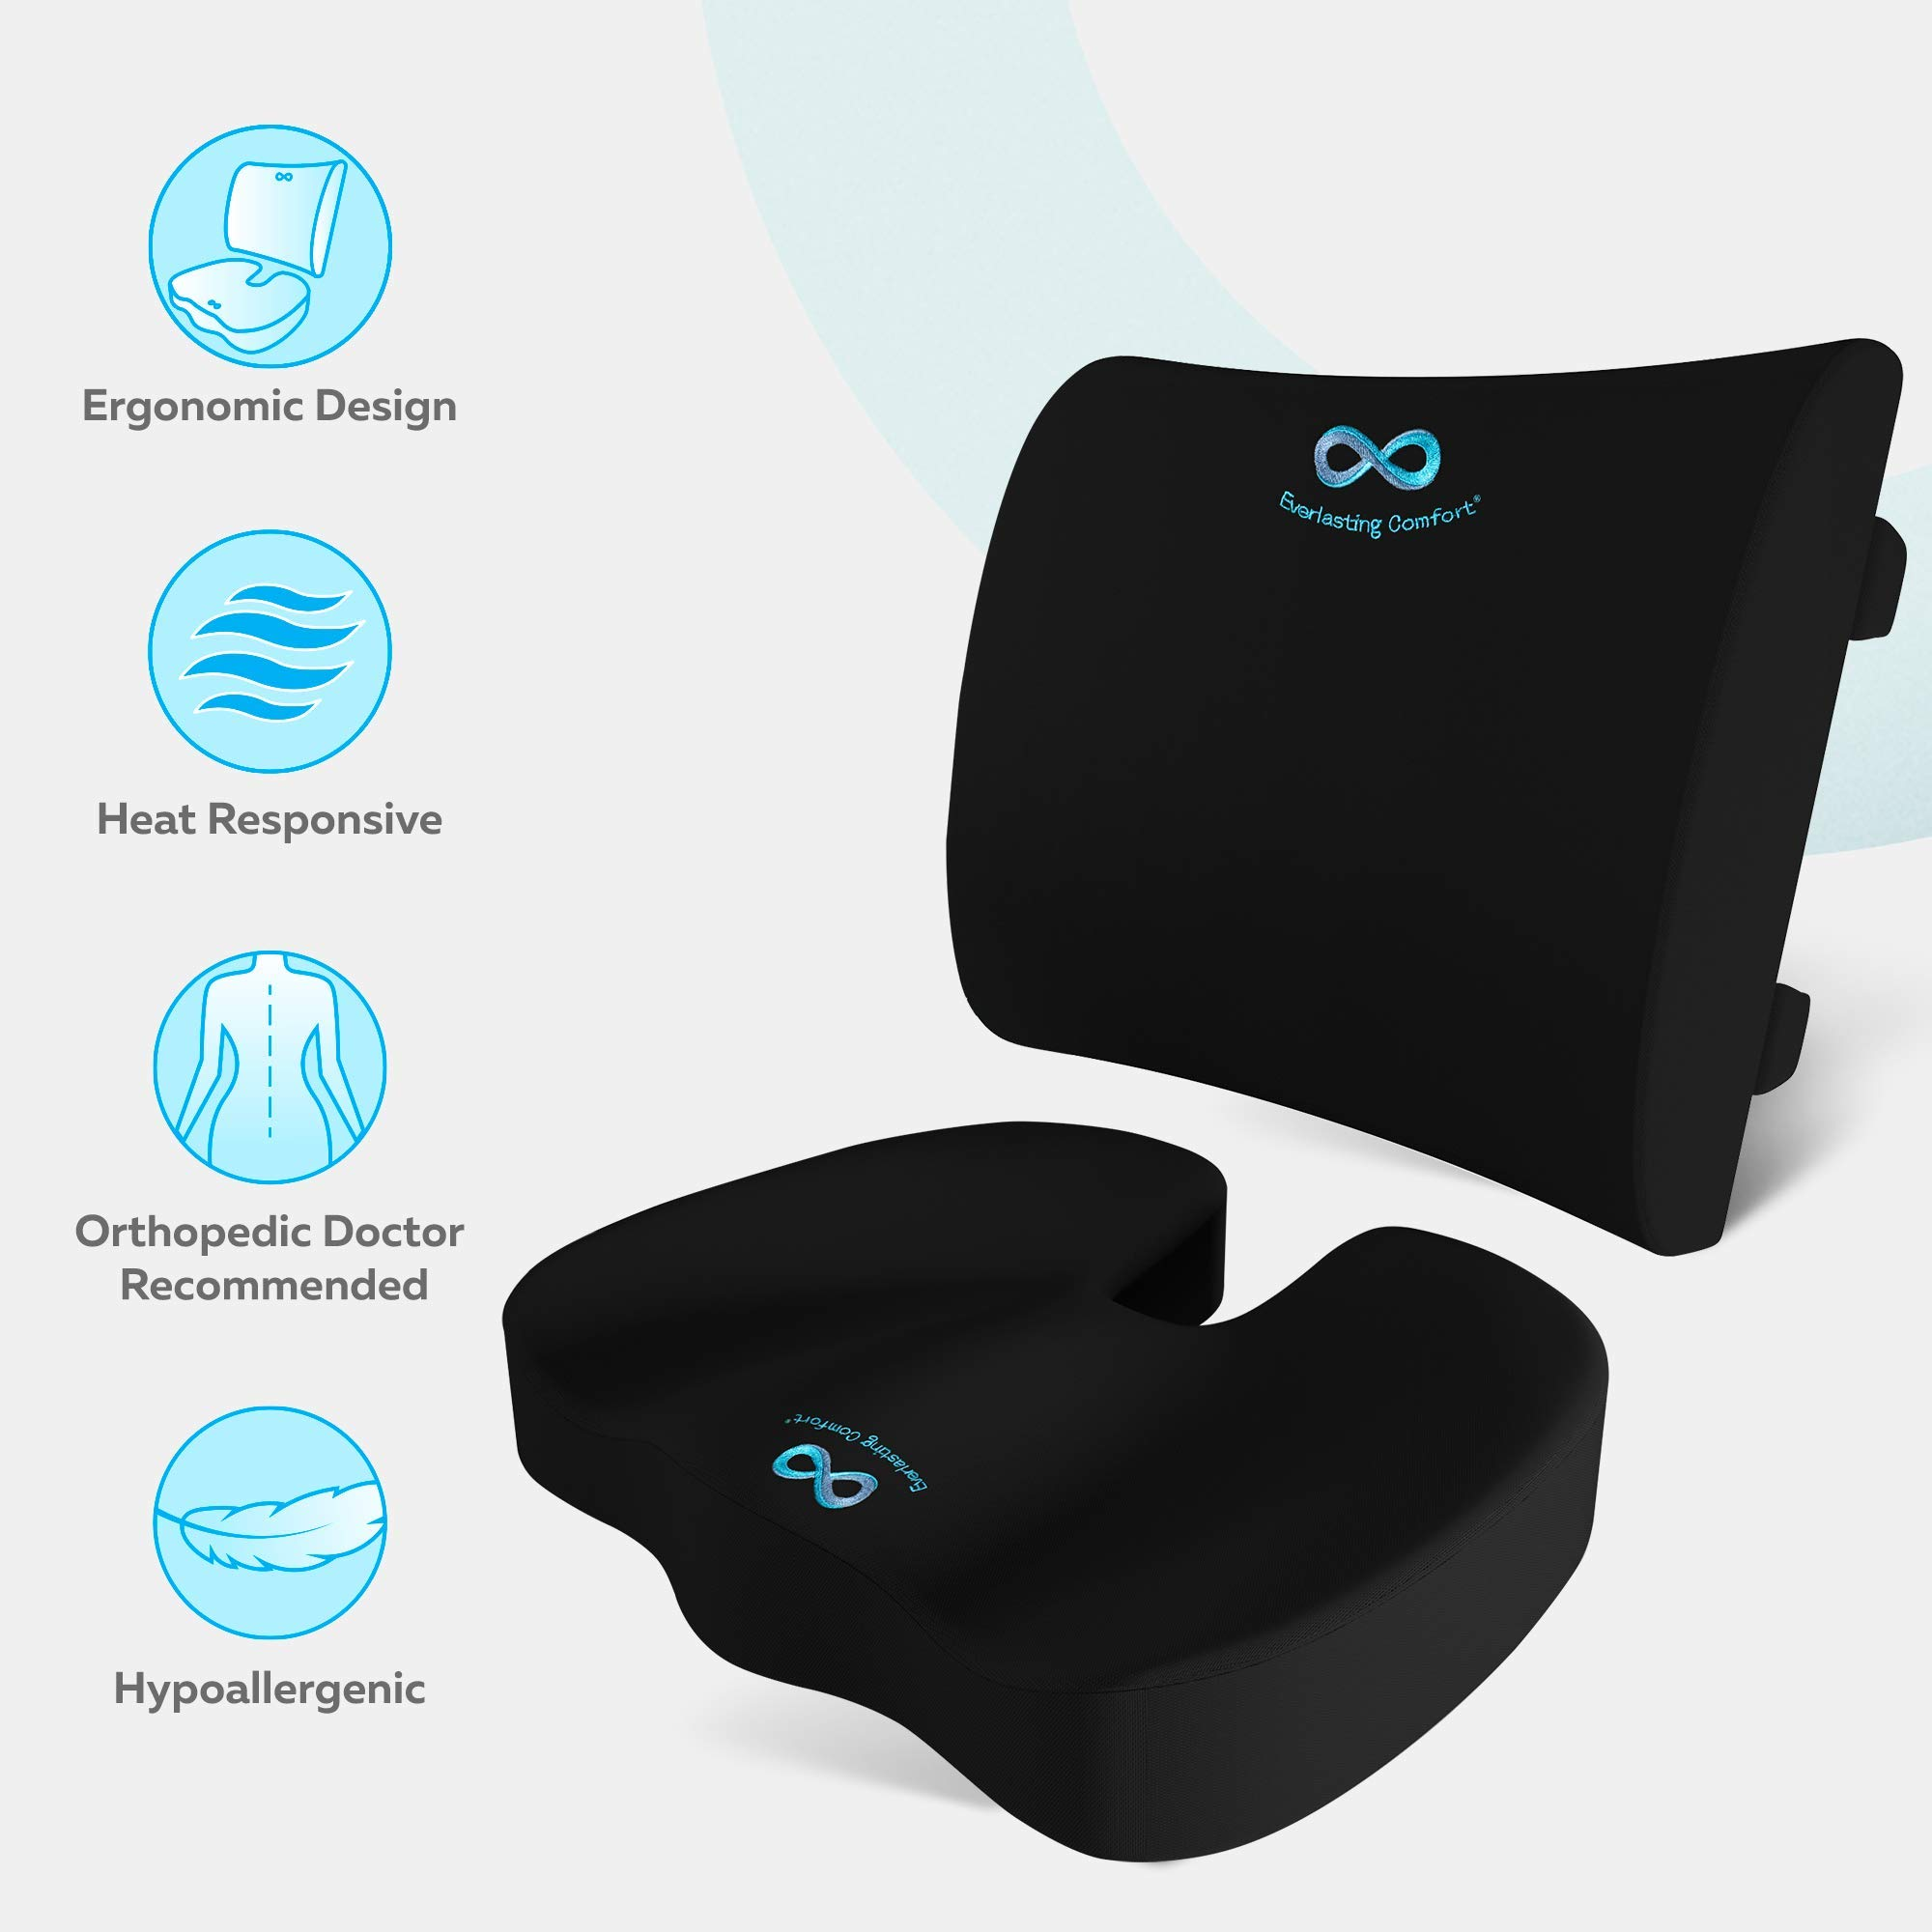 Memory Foam Seat Cushion Back Cushion Combo Gel Infused Ventilated Orthopedic Design Perfect For Office Chair Relieves Back Coccyx Sciatica